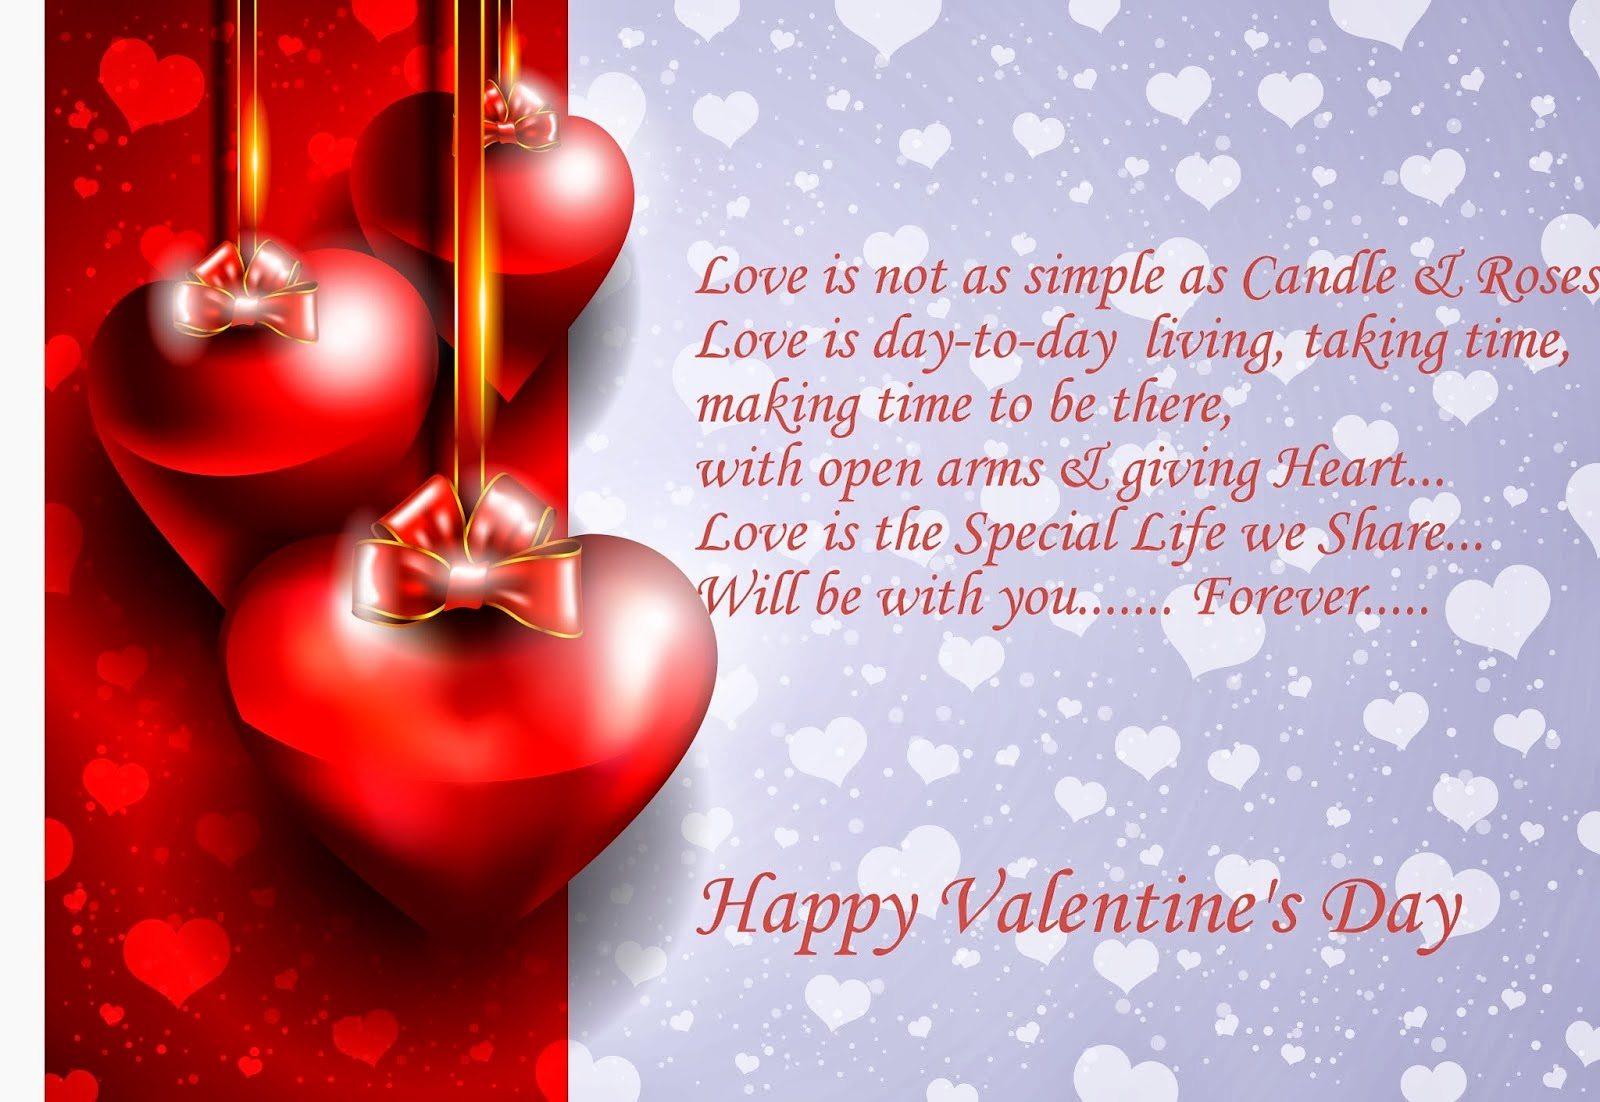 Valentines day greeting cards pictures